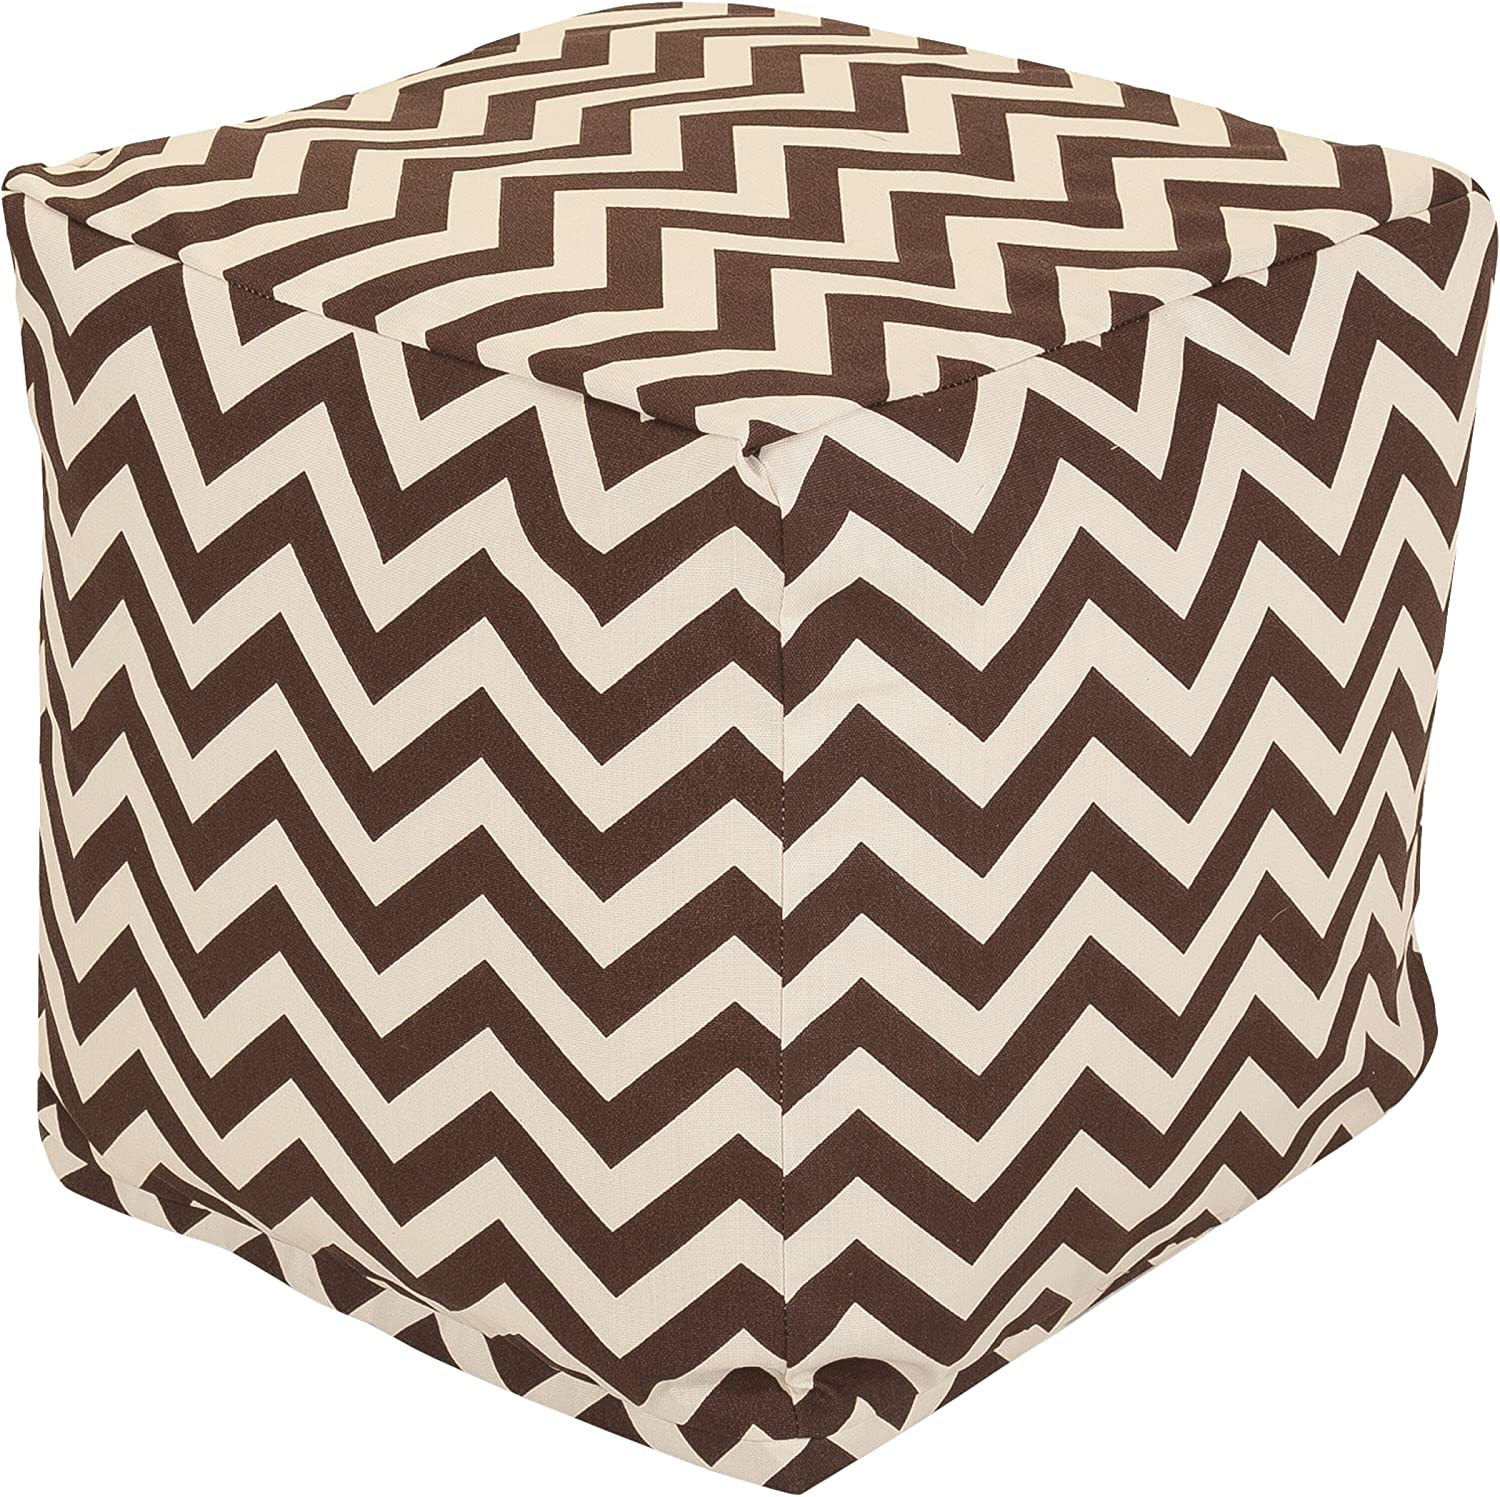 Majestic Home Goods Baby Pink Chevron Indoor Bean Bag Ottoman Pouf Cube 17 L x 17 W x 17 H